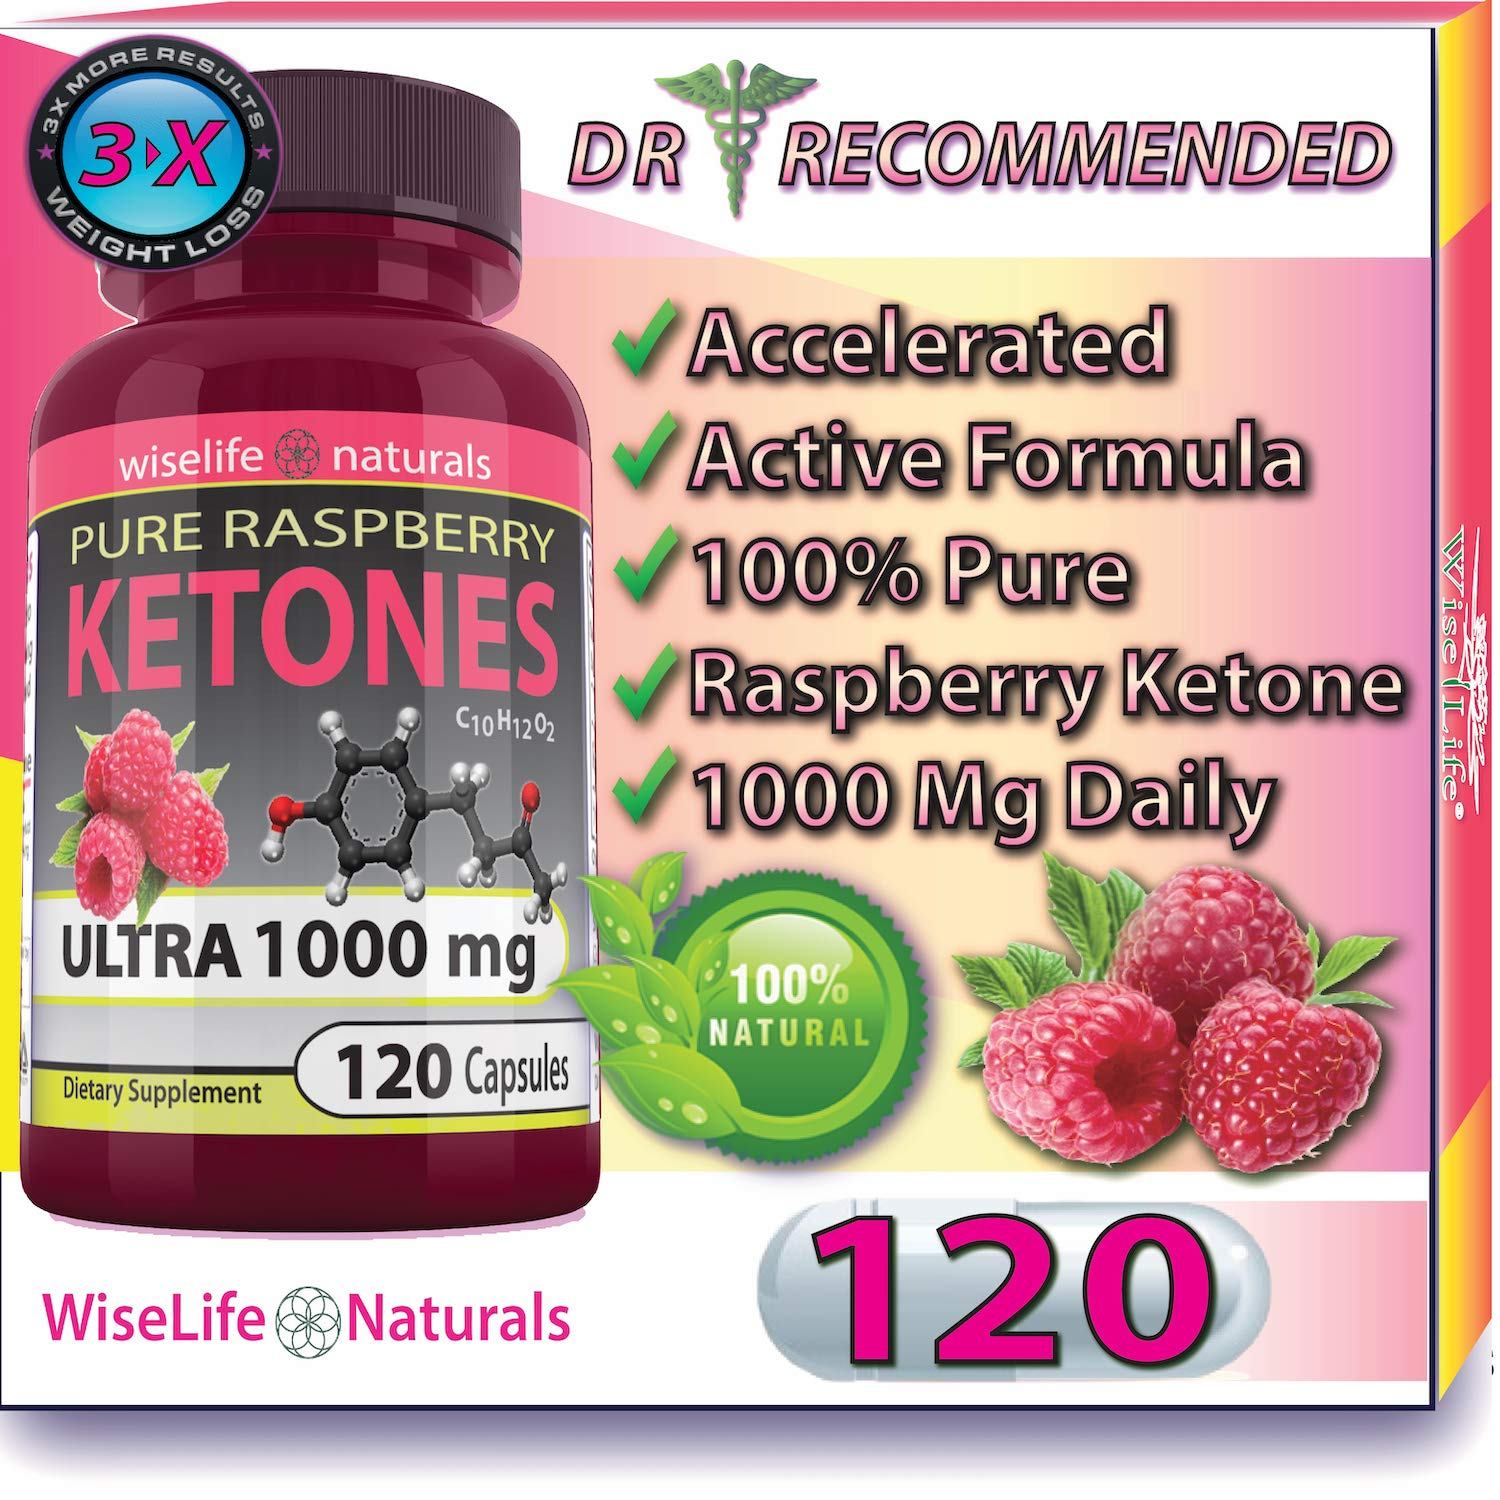 Best Fast Metabolism Slimming Pill - Pure Raspberry Ketones Fresh 1000mg Plus Max Burn, Lose Fat Quickly Proven Supports Rapid Ketogenic Diet Weight Loss, Works Naturally, Slim at Home No Side Effects by WiseLifeNaturals